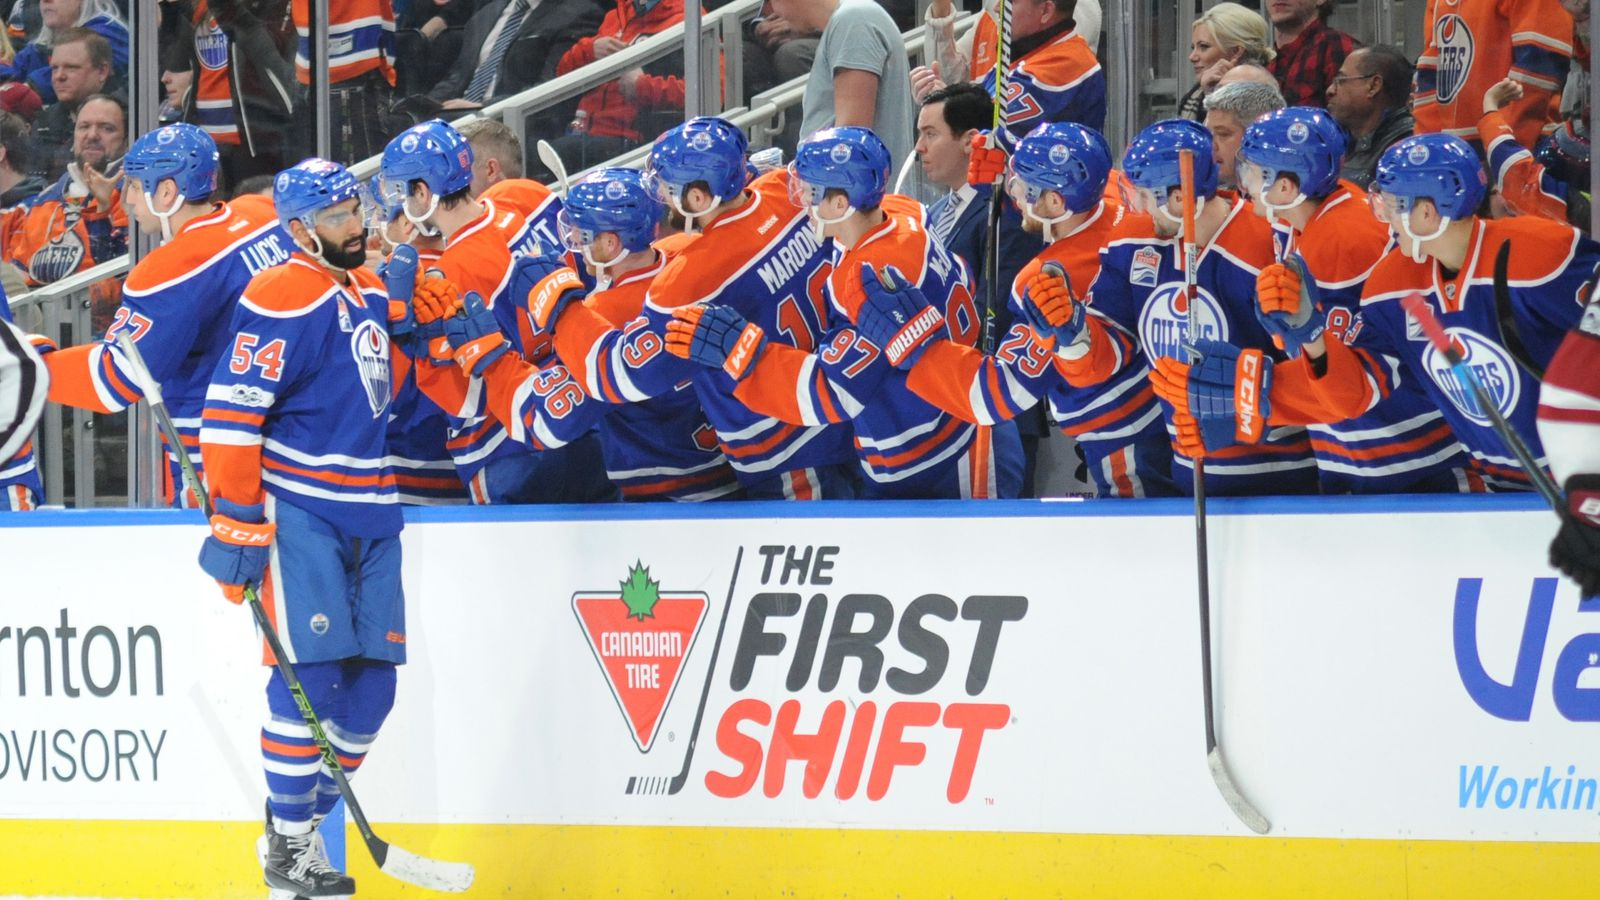 Jujhar Khaira's first goal was a win for NHL diversity and hard workers everywhere